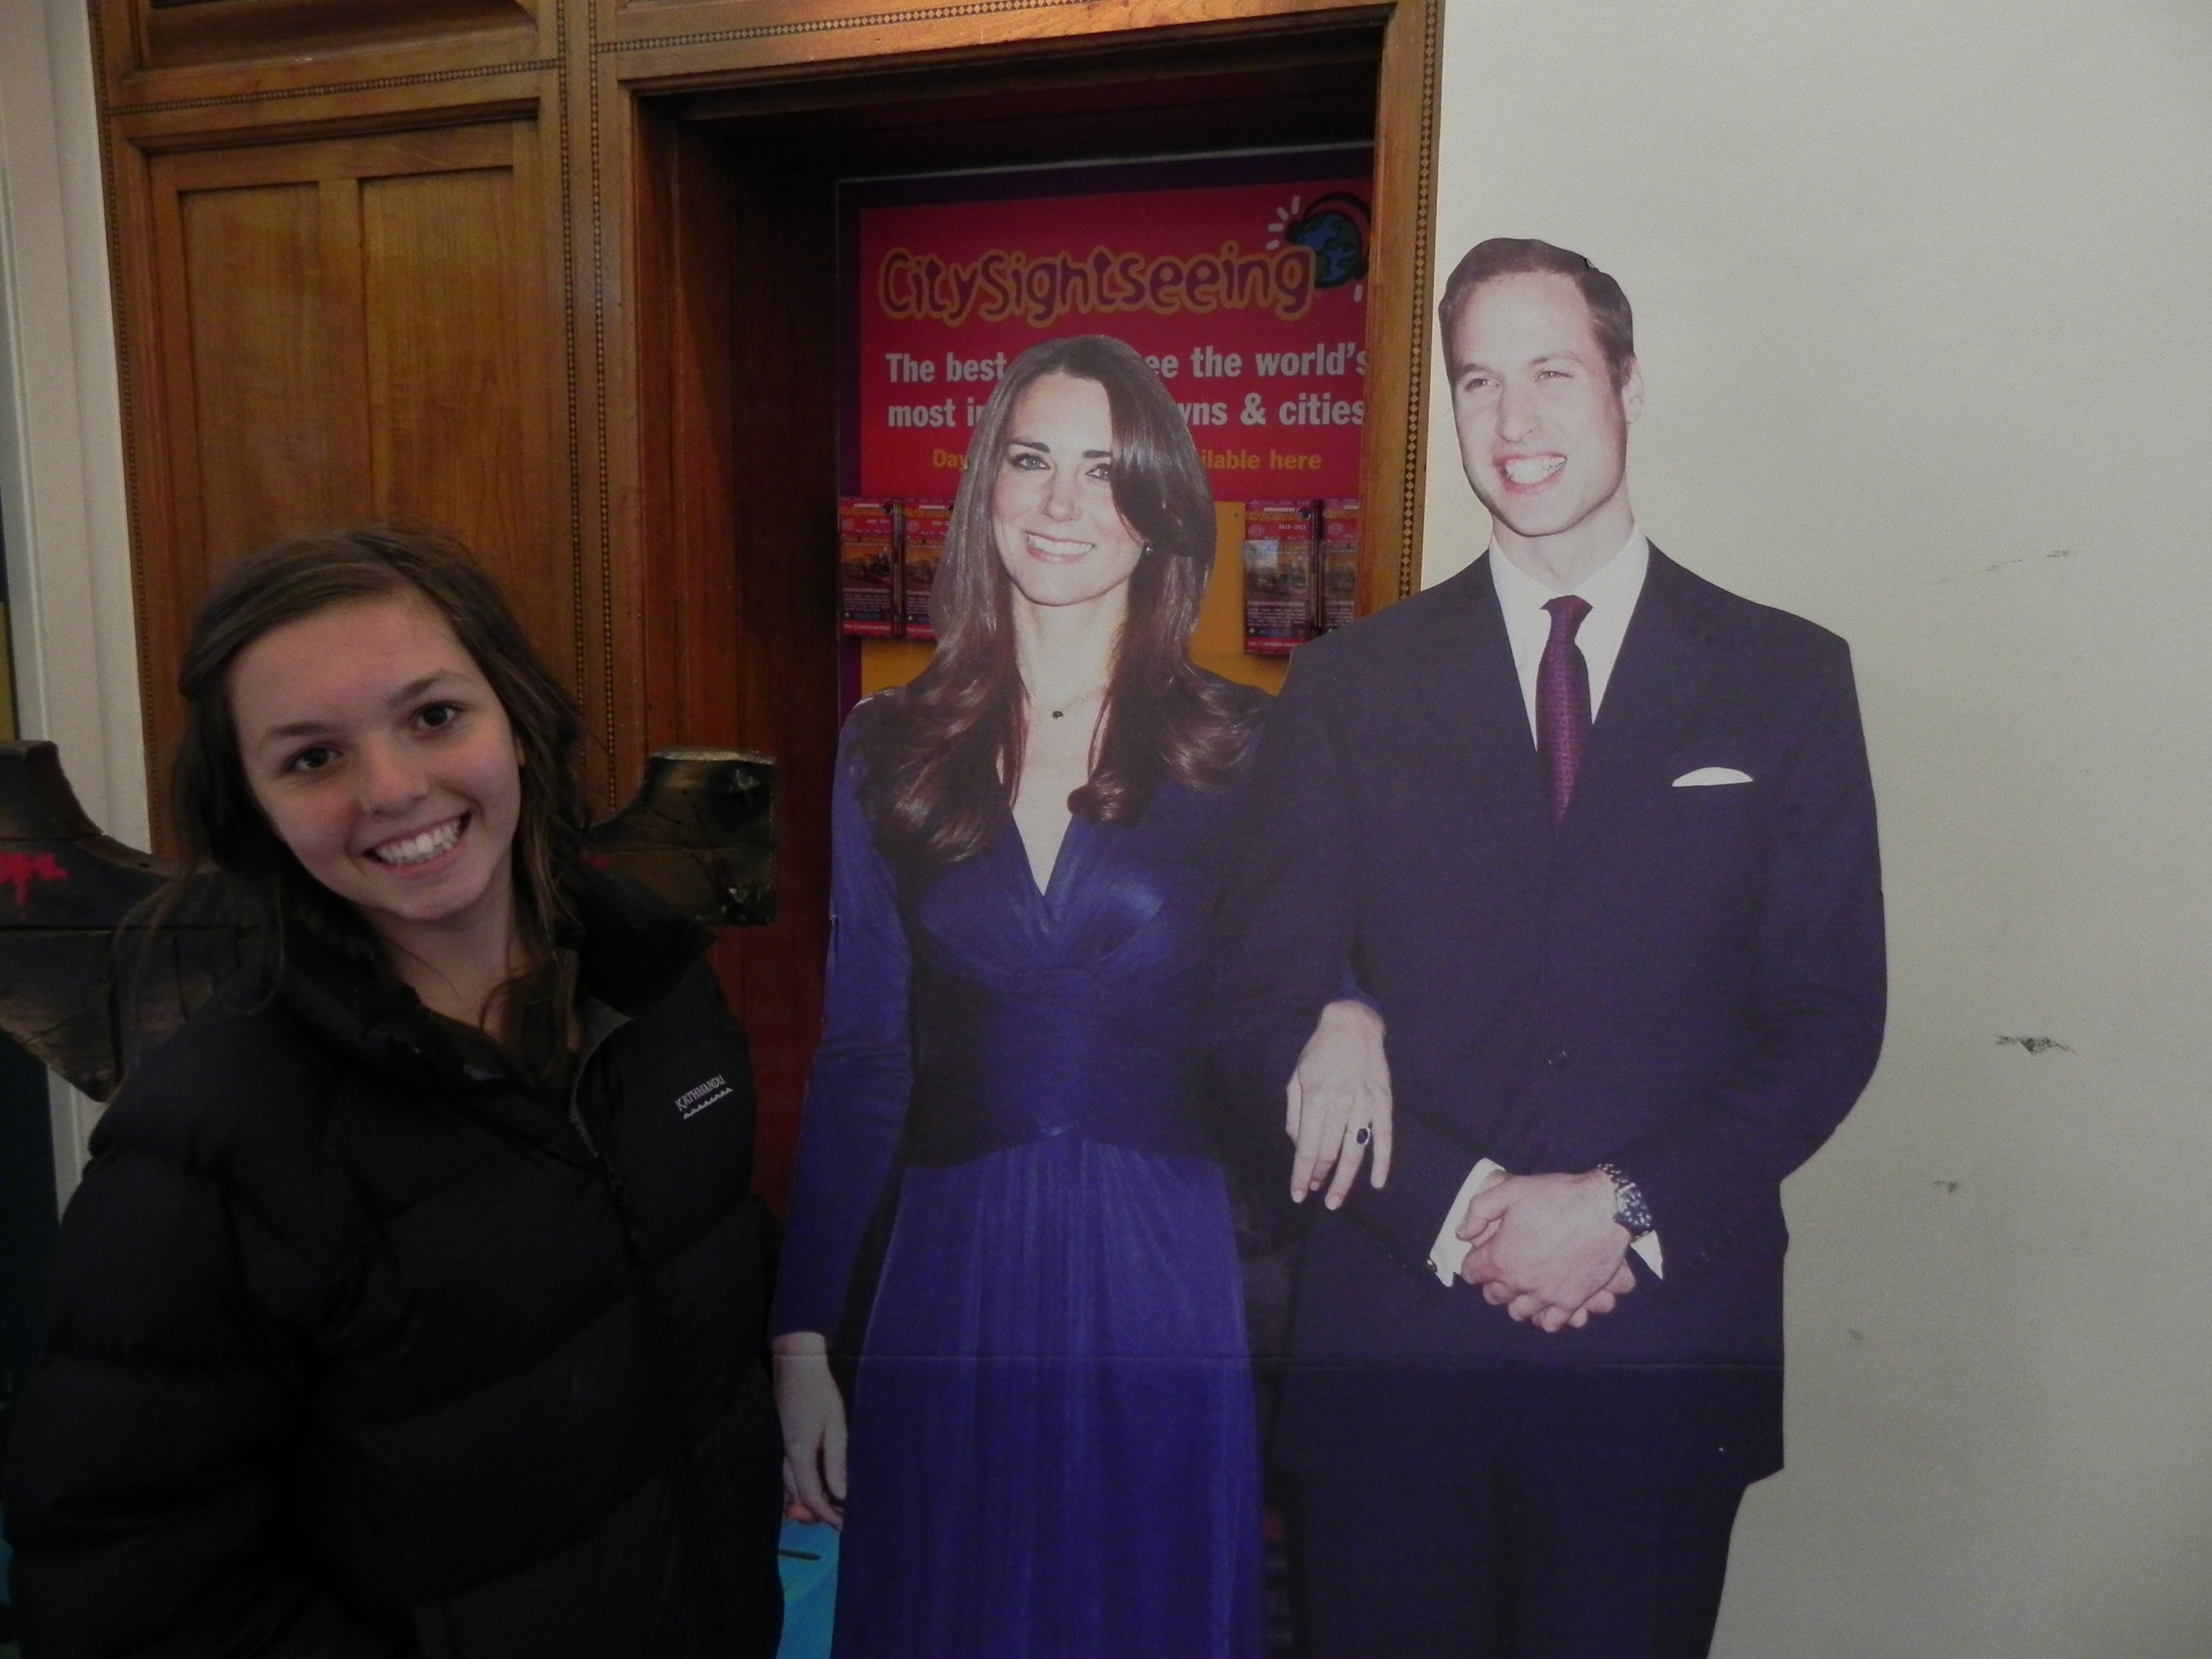 We may even run into Will and Kate.